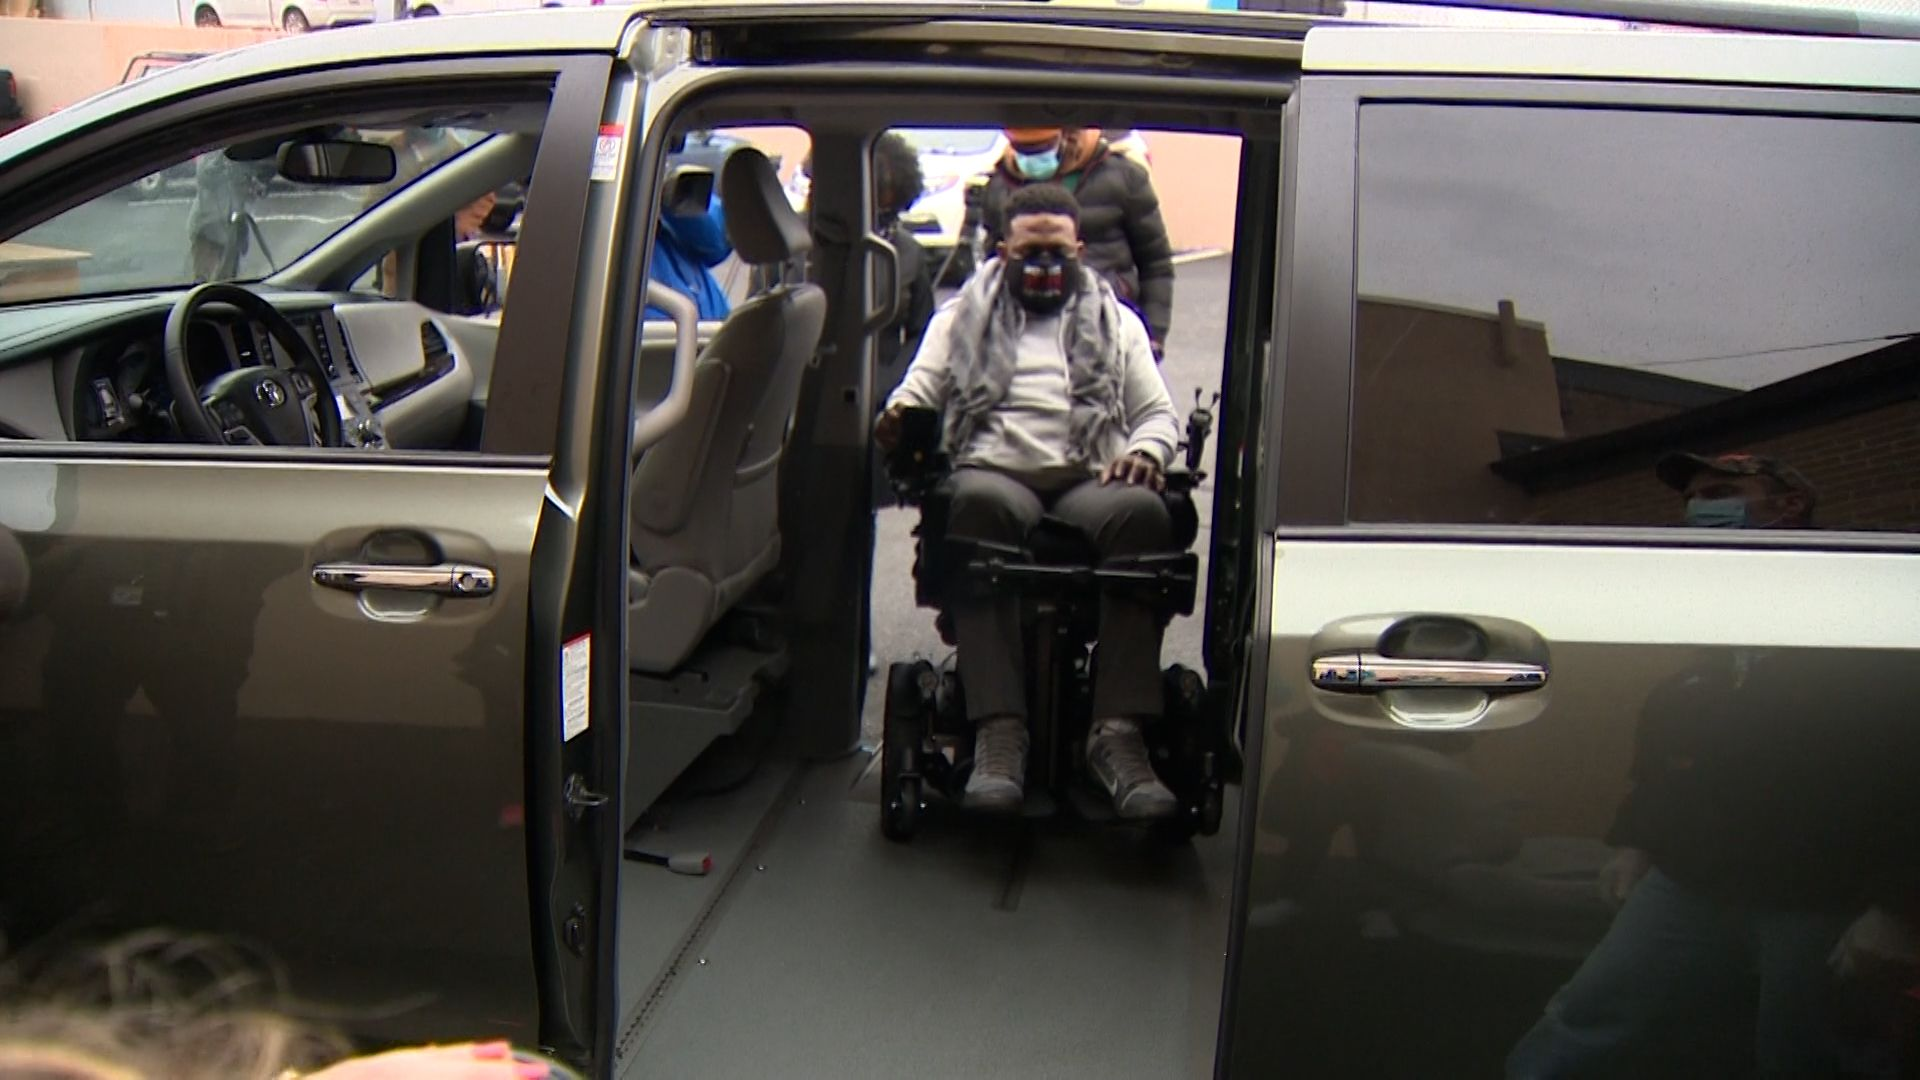 Sergeant who survived shooting surprised with wheelchair-accessible van